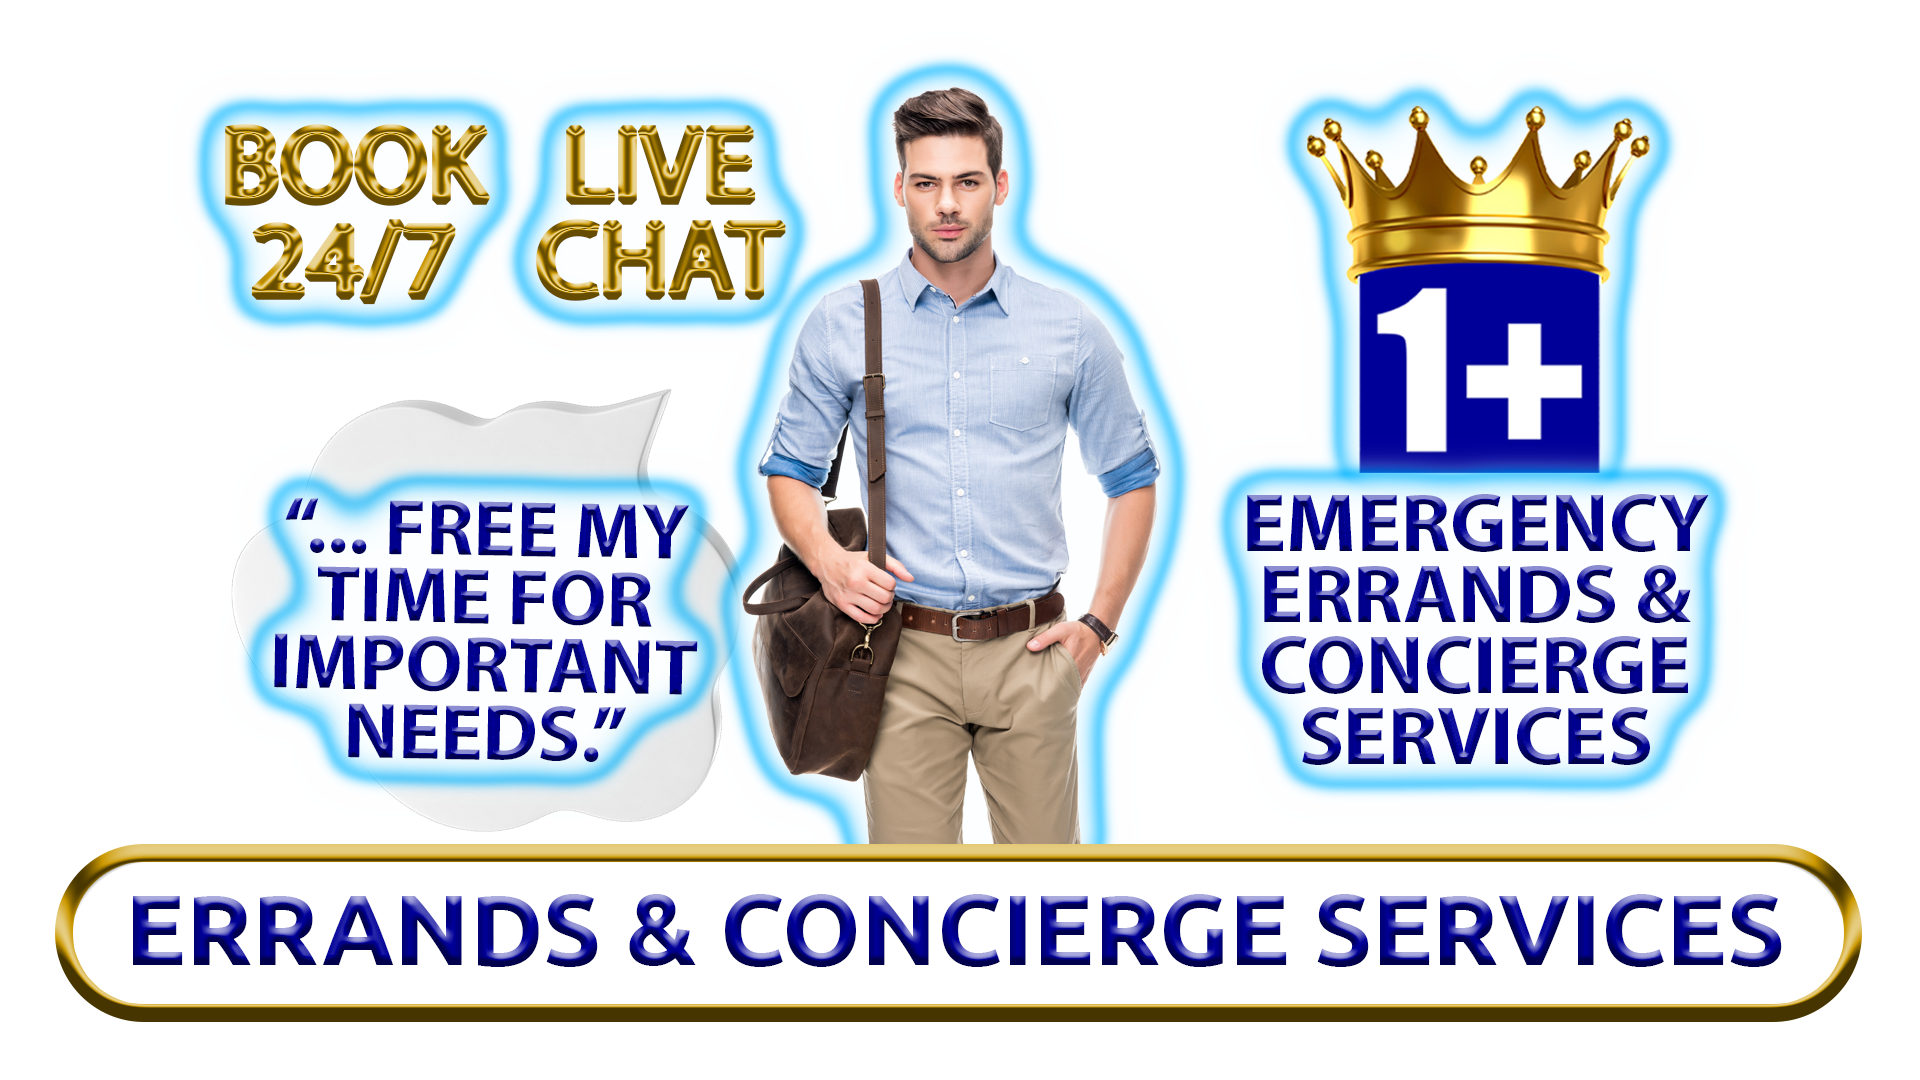 MASTERFUL ERRAND RUNNERS AND CONCIERGE SERVICES BY 1+MOVERS - MOVING - MOVERS - MOVE - HOUSTON TEXAS - NASSAU BAY TEXAS - SEABROOK TEXAS - KEMAH TEXAS 8.2